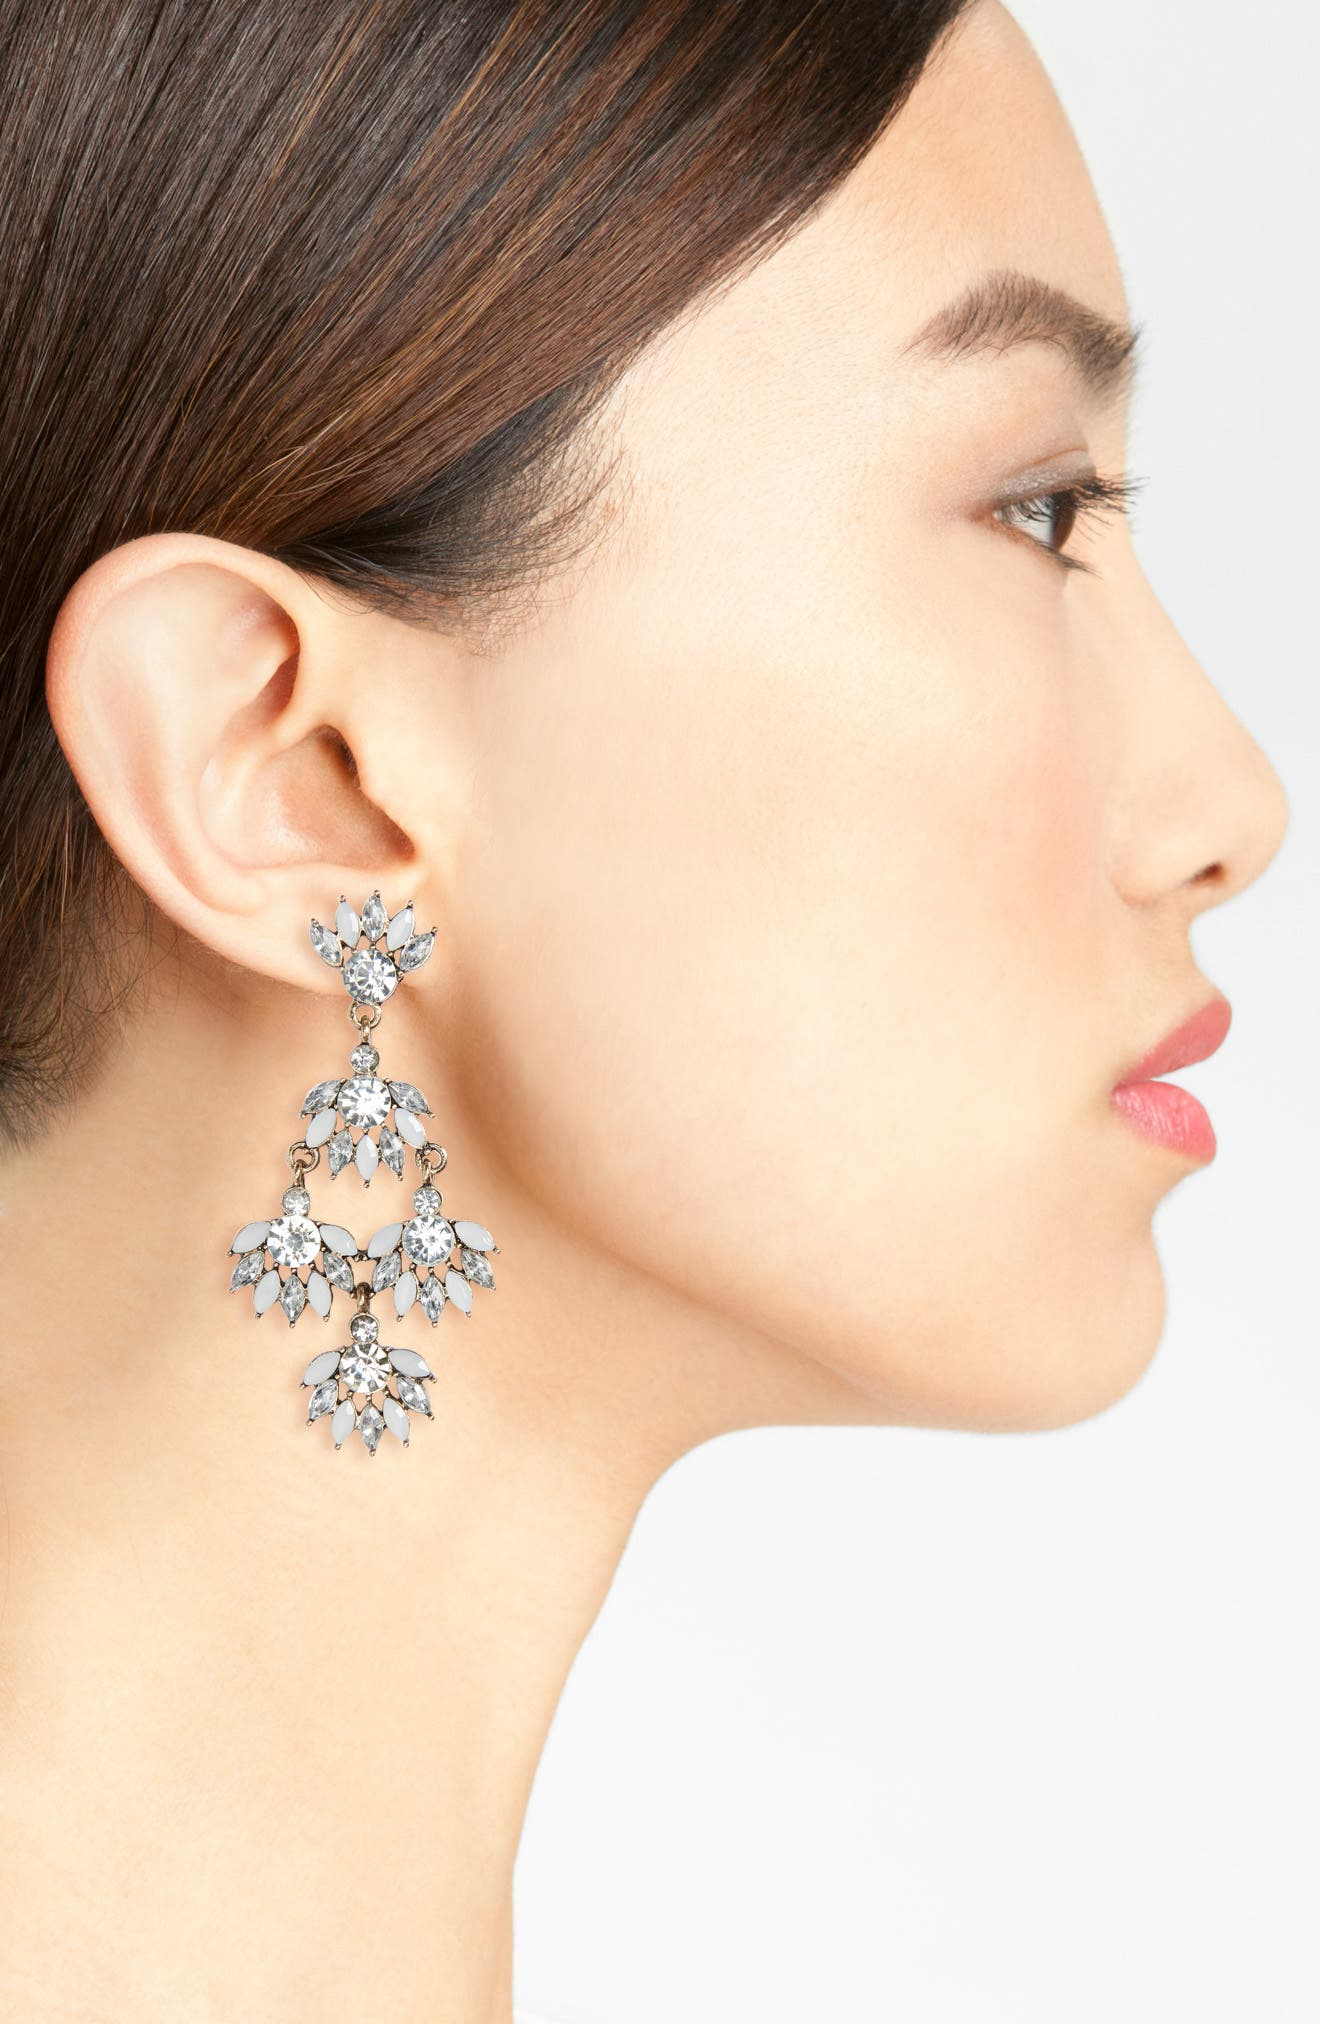 SOLE SOCIETY, Chandelier Earrings, Alternate thumbnail 2, color, 100